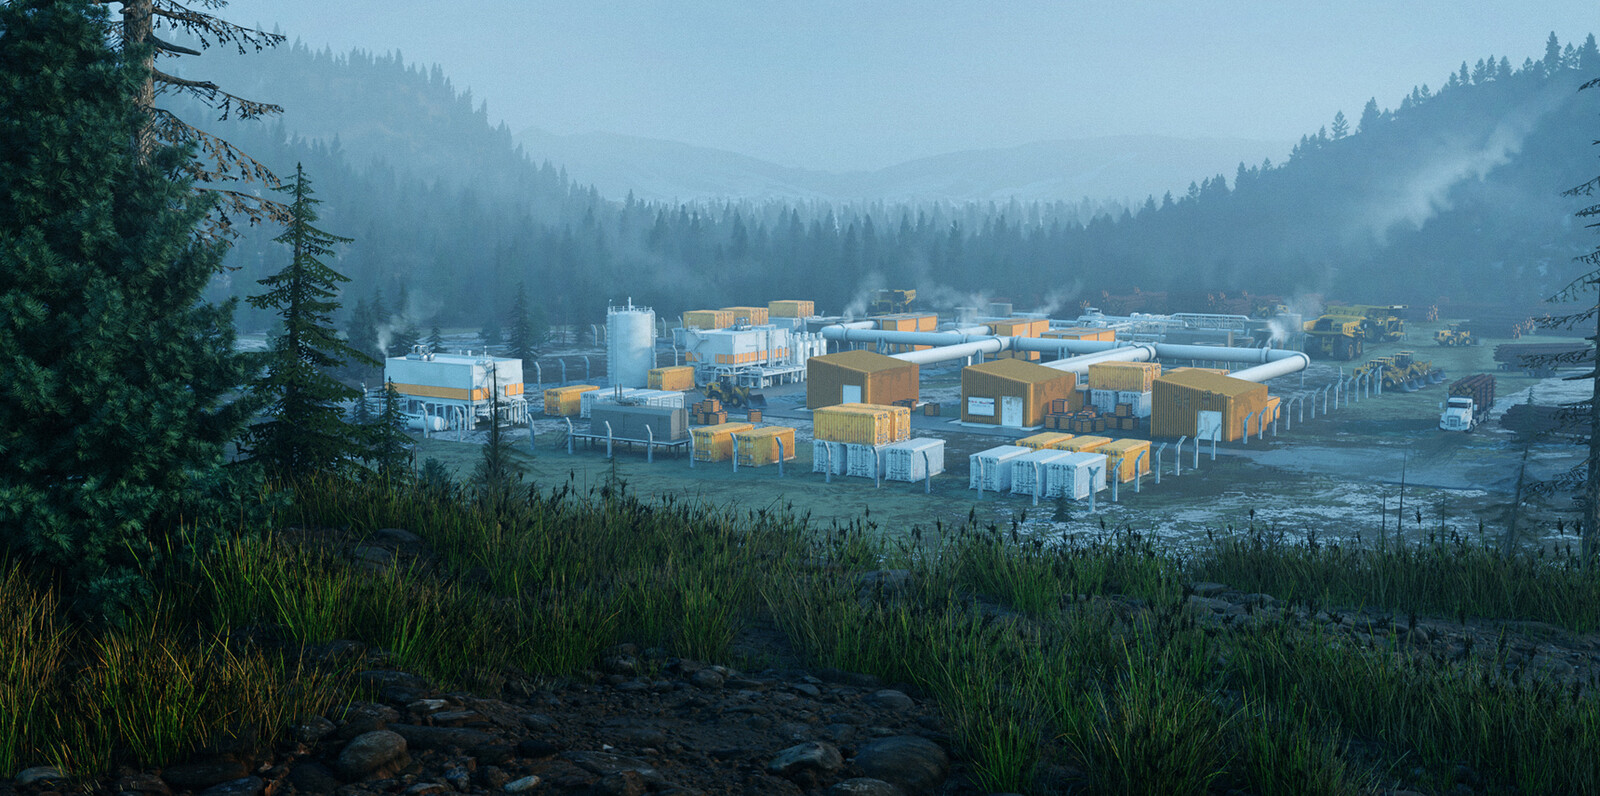 Several MMRs powering a lumber camp